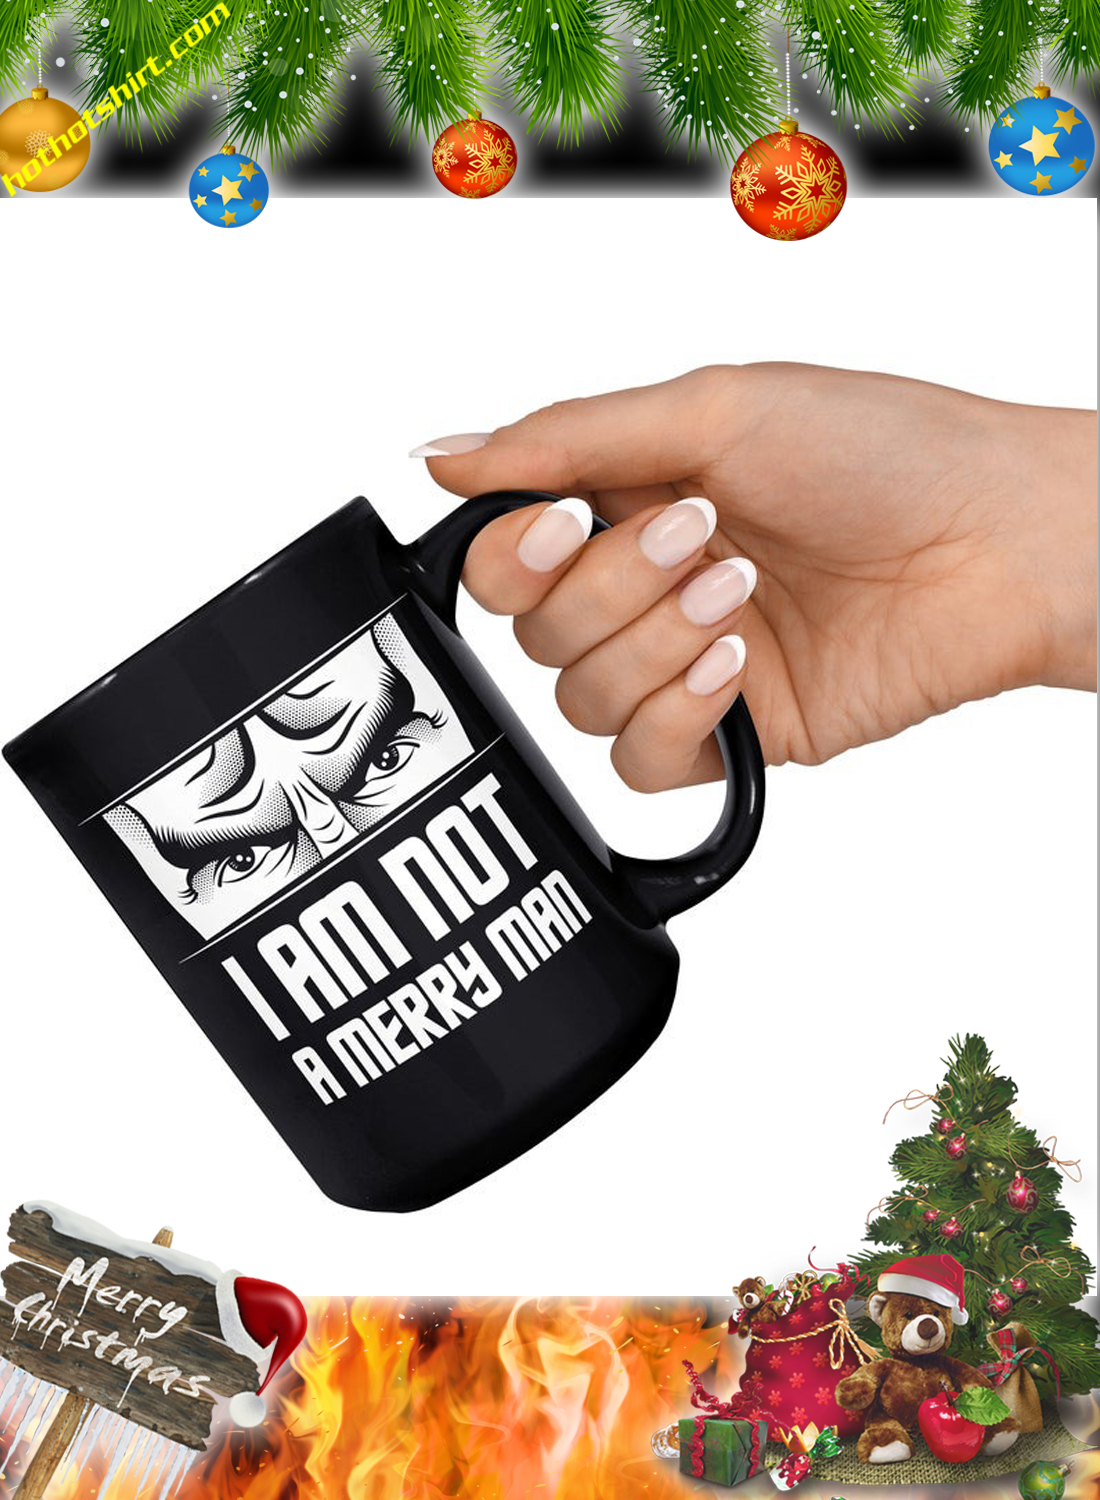 I am not a merry man mug 2